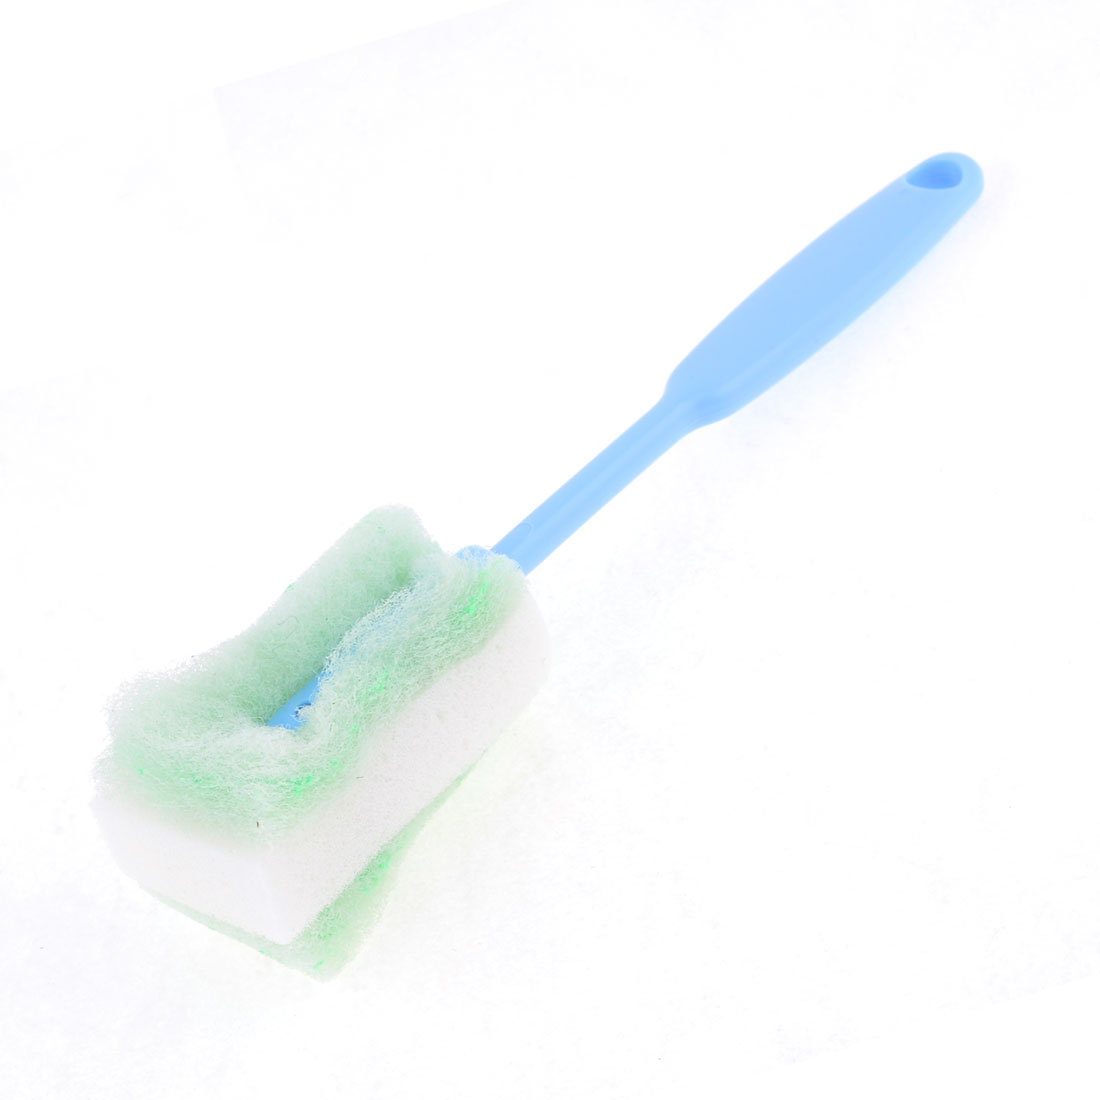 "Home Blue Grip Green White Sponge Tip Cleaning Glass Cup Washing Brush 9.6"" Long"